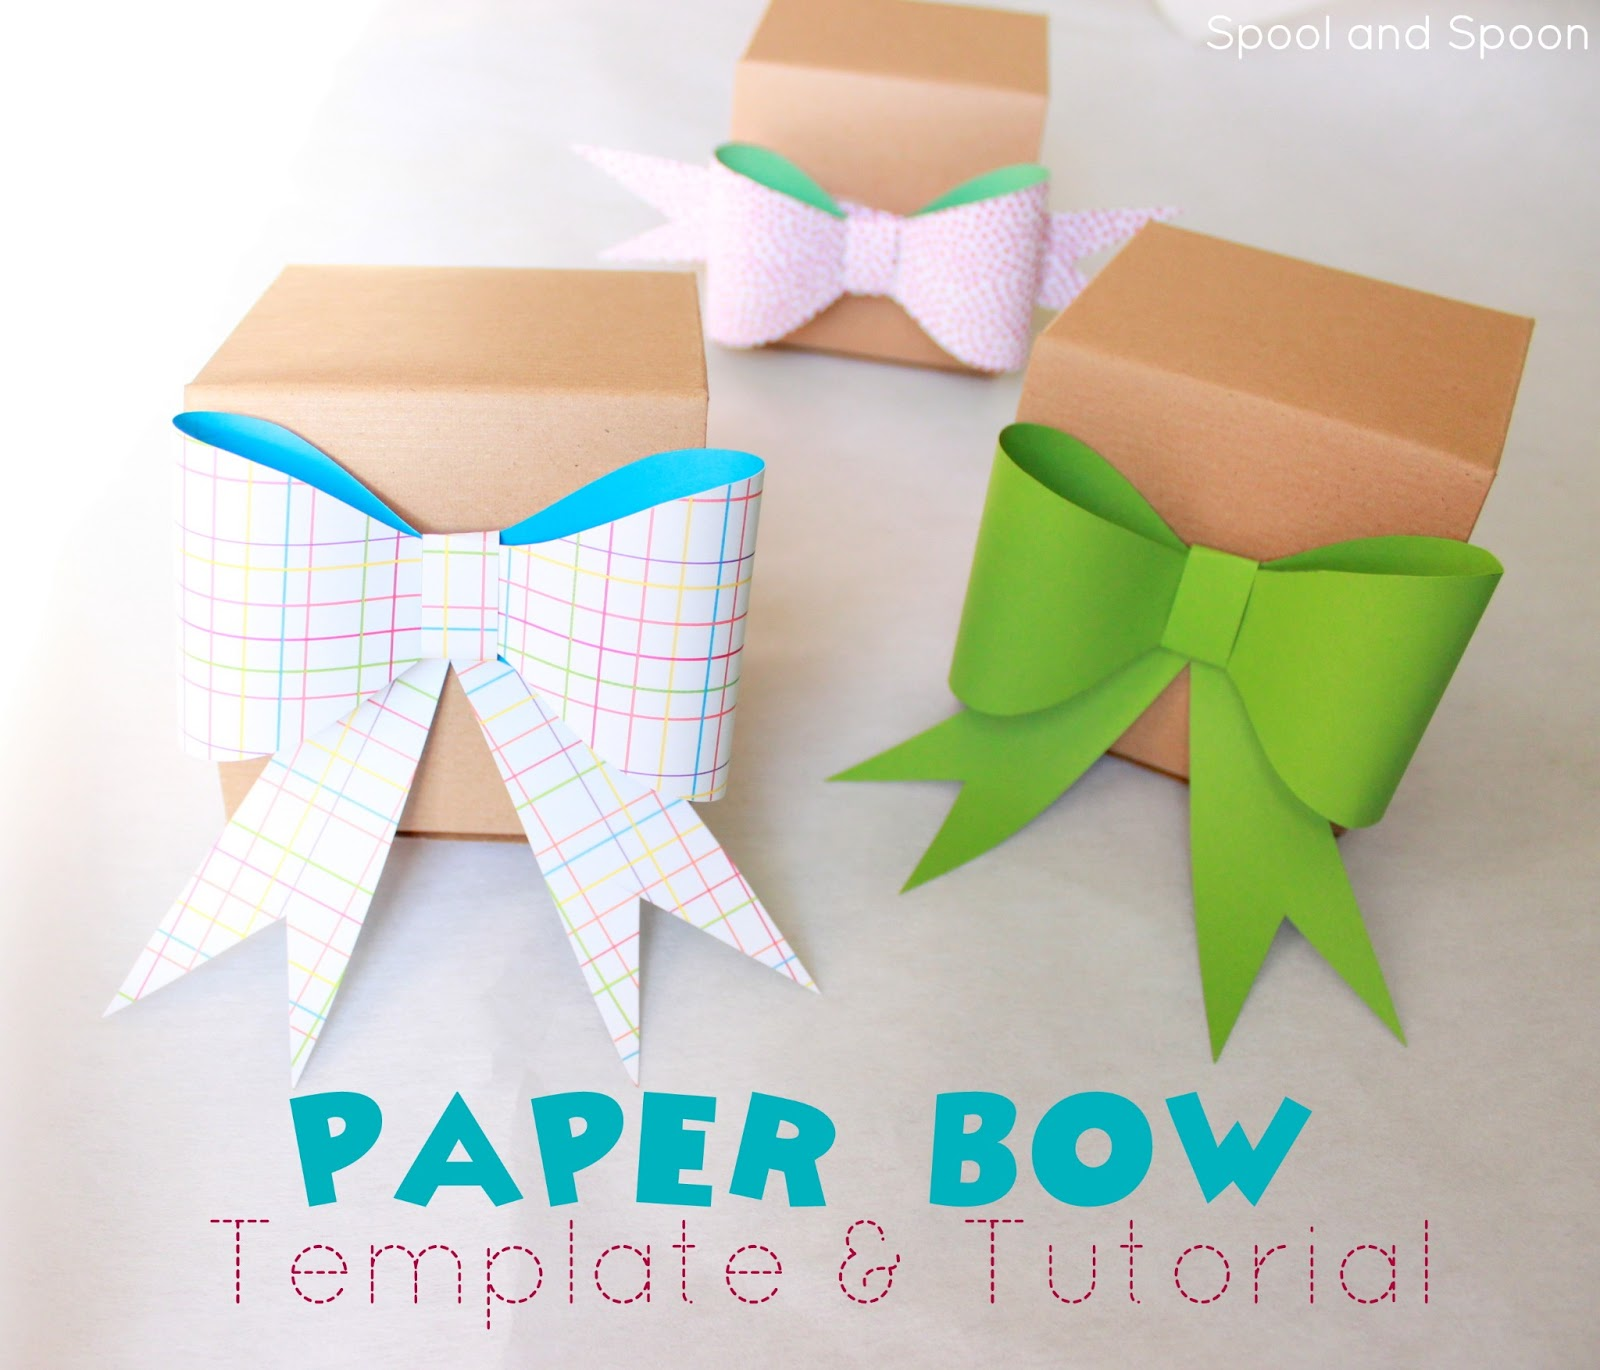 Spool and spoon how to paper bow free template how to paper bow free template maxwellsz